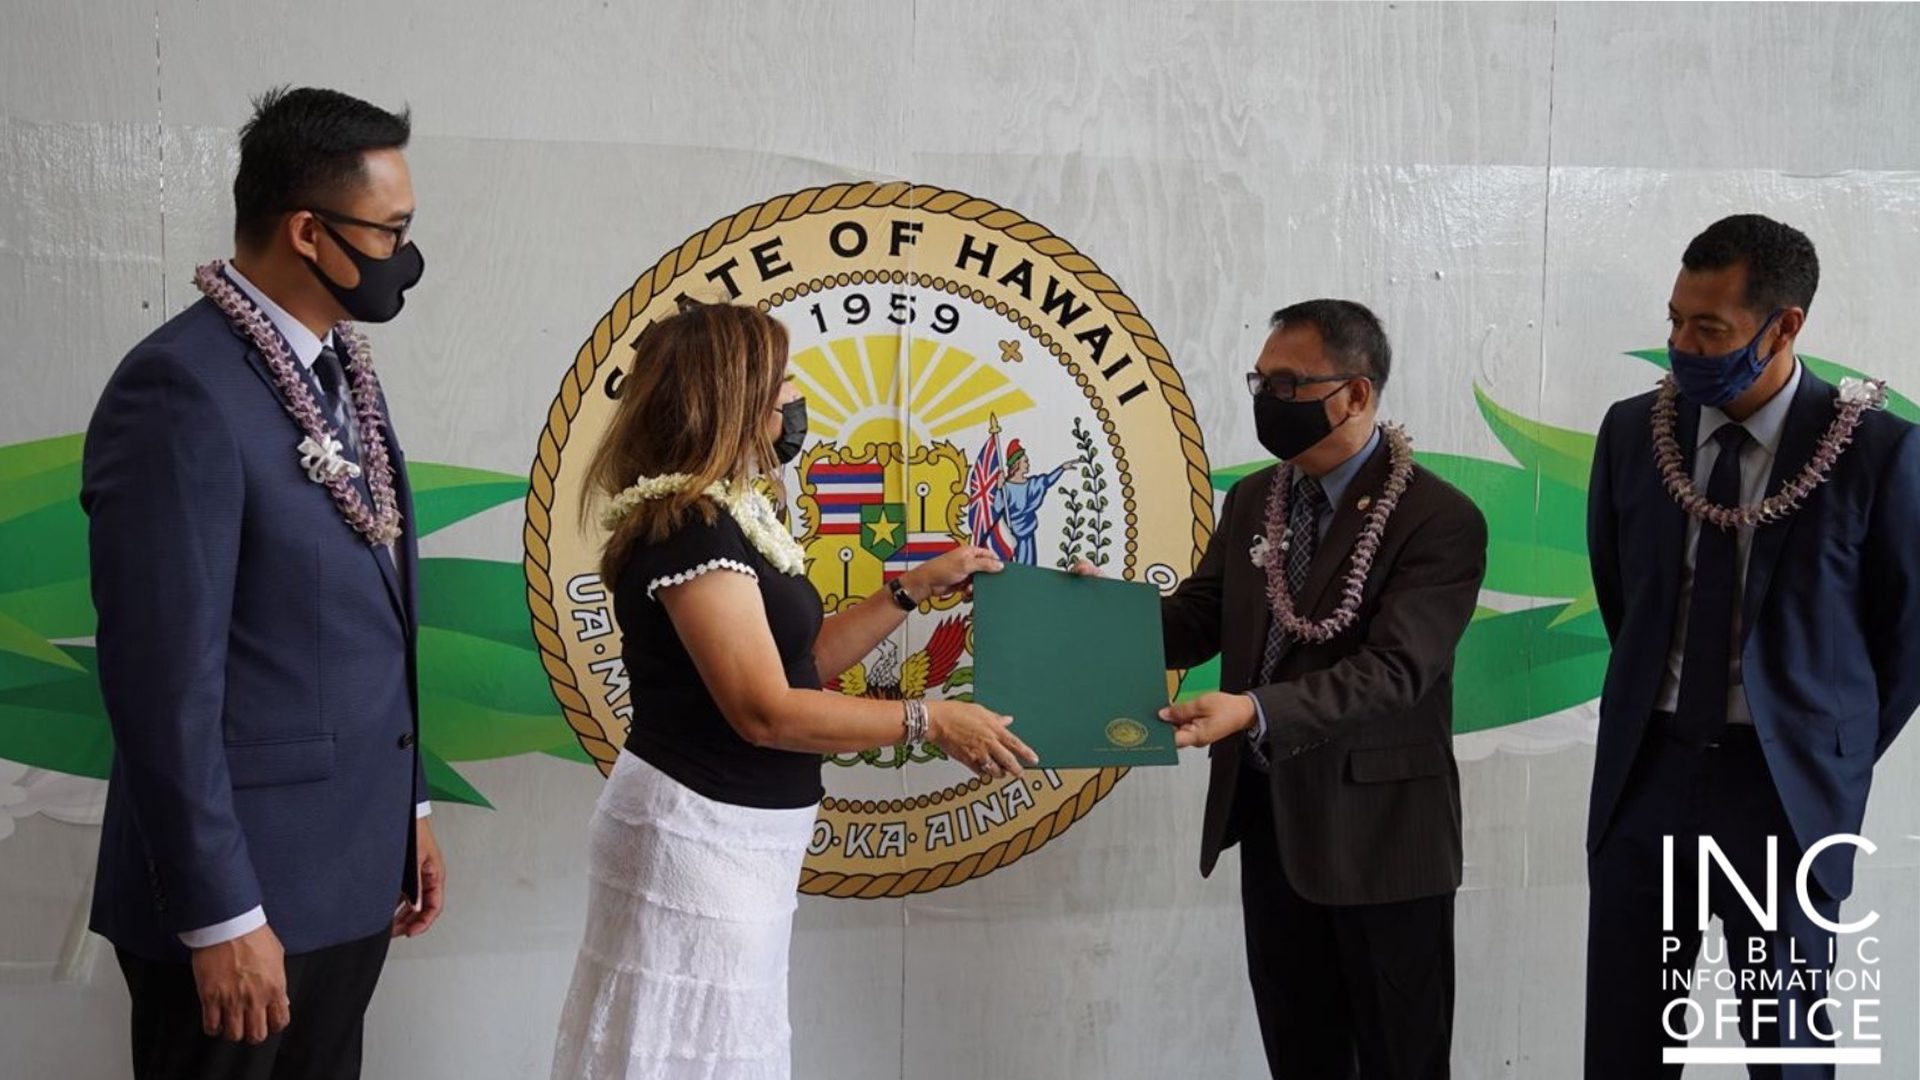 Hawaii State Senator Bennette E. Misalucha offers certificate of recognition to Iglesia Ni Cristo, Church Of Christ Hawaii-Pacific District Supervising Minister, Brother Noel Caritativo.